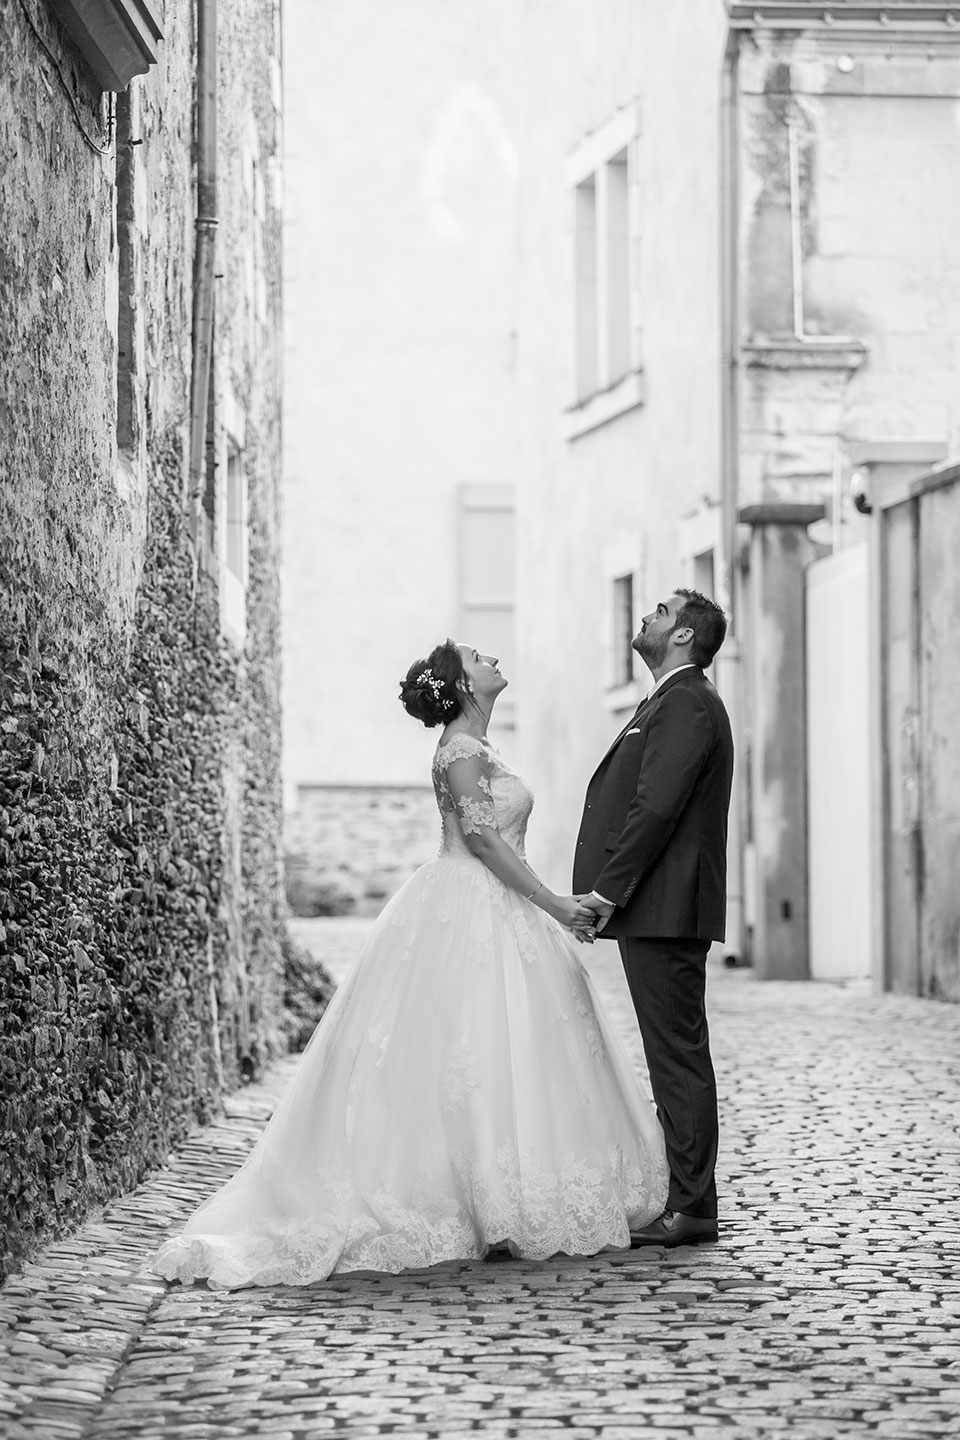 particuliers-evenements-mariage-oui-tiphaine&rudy-71